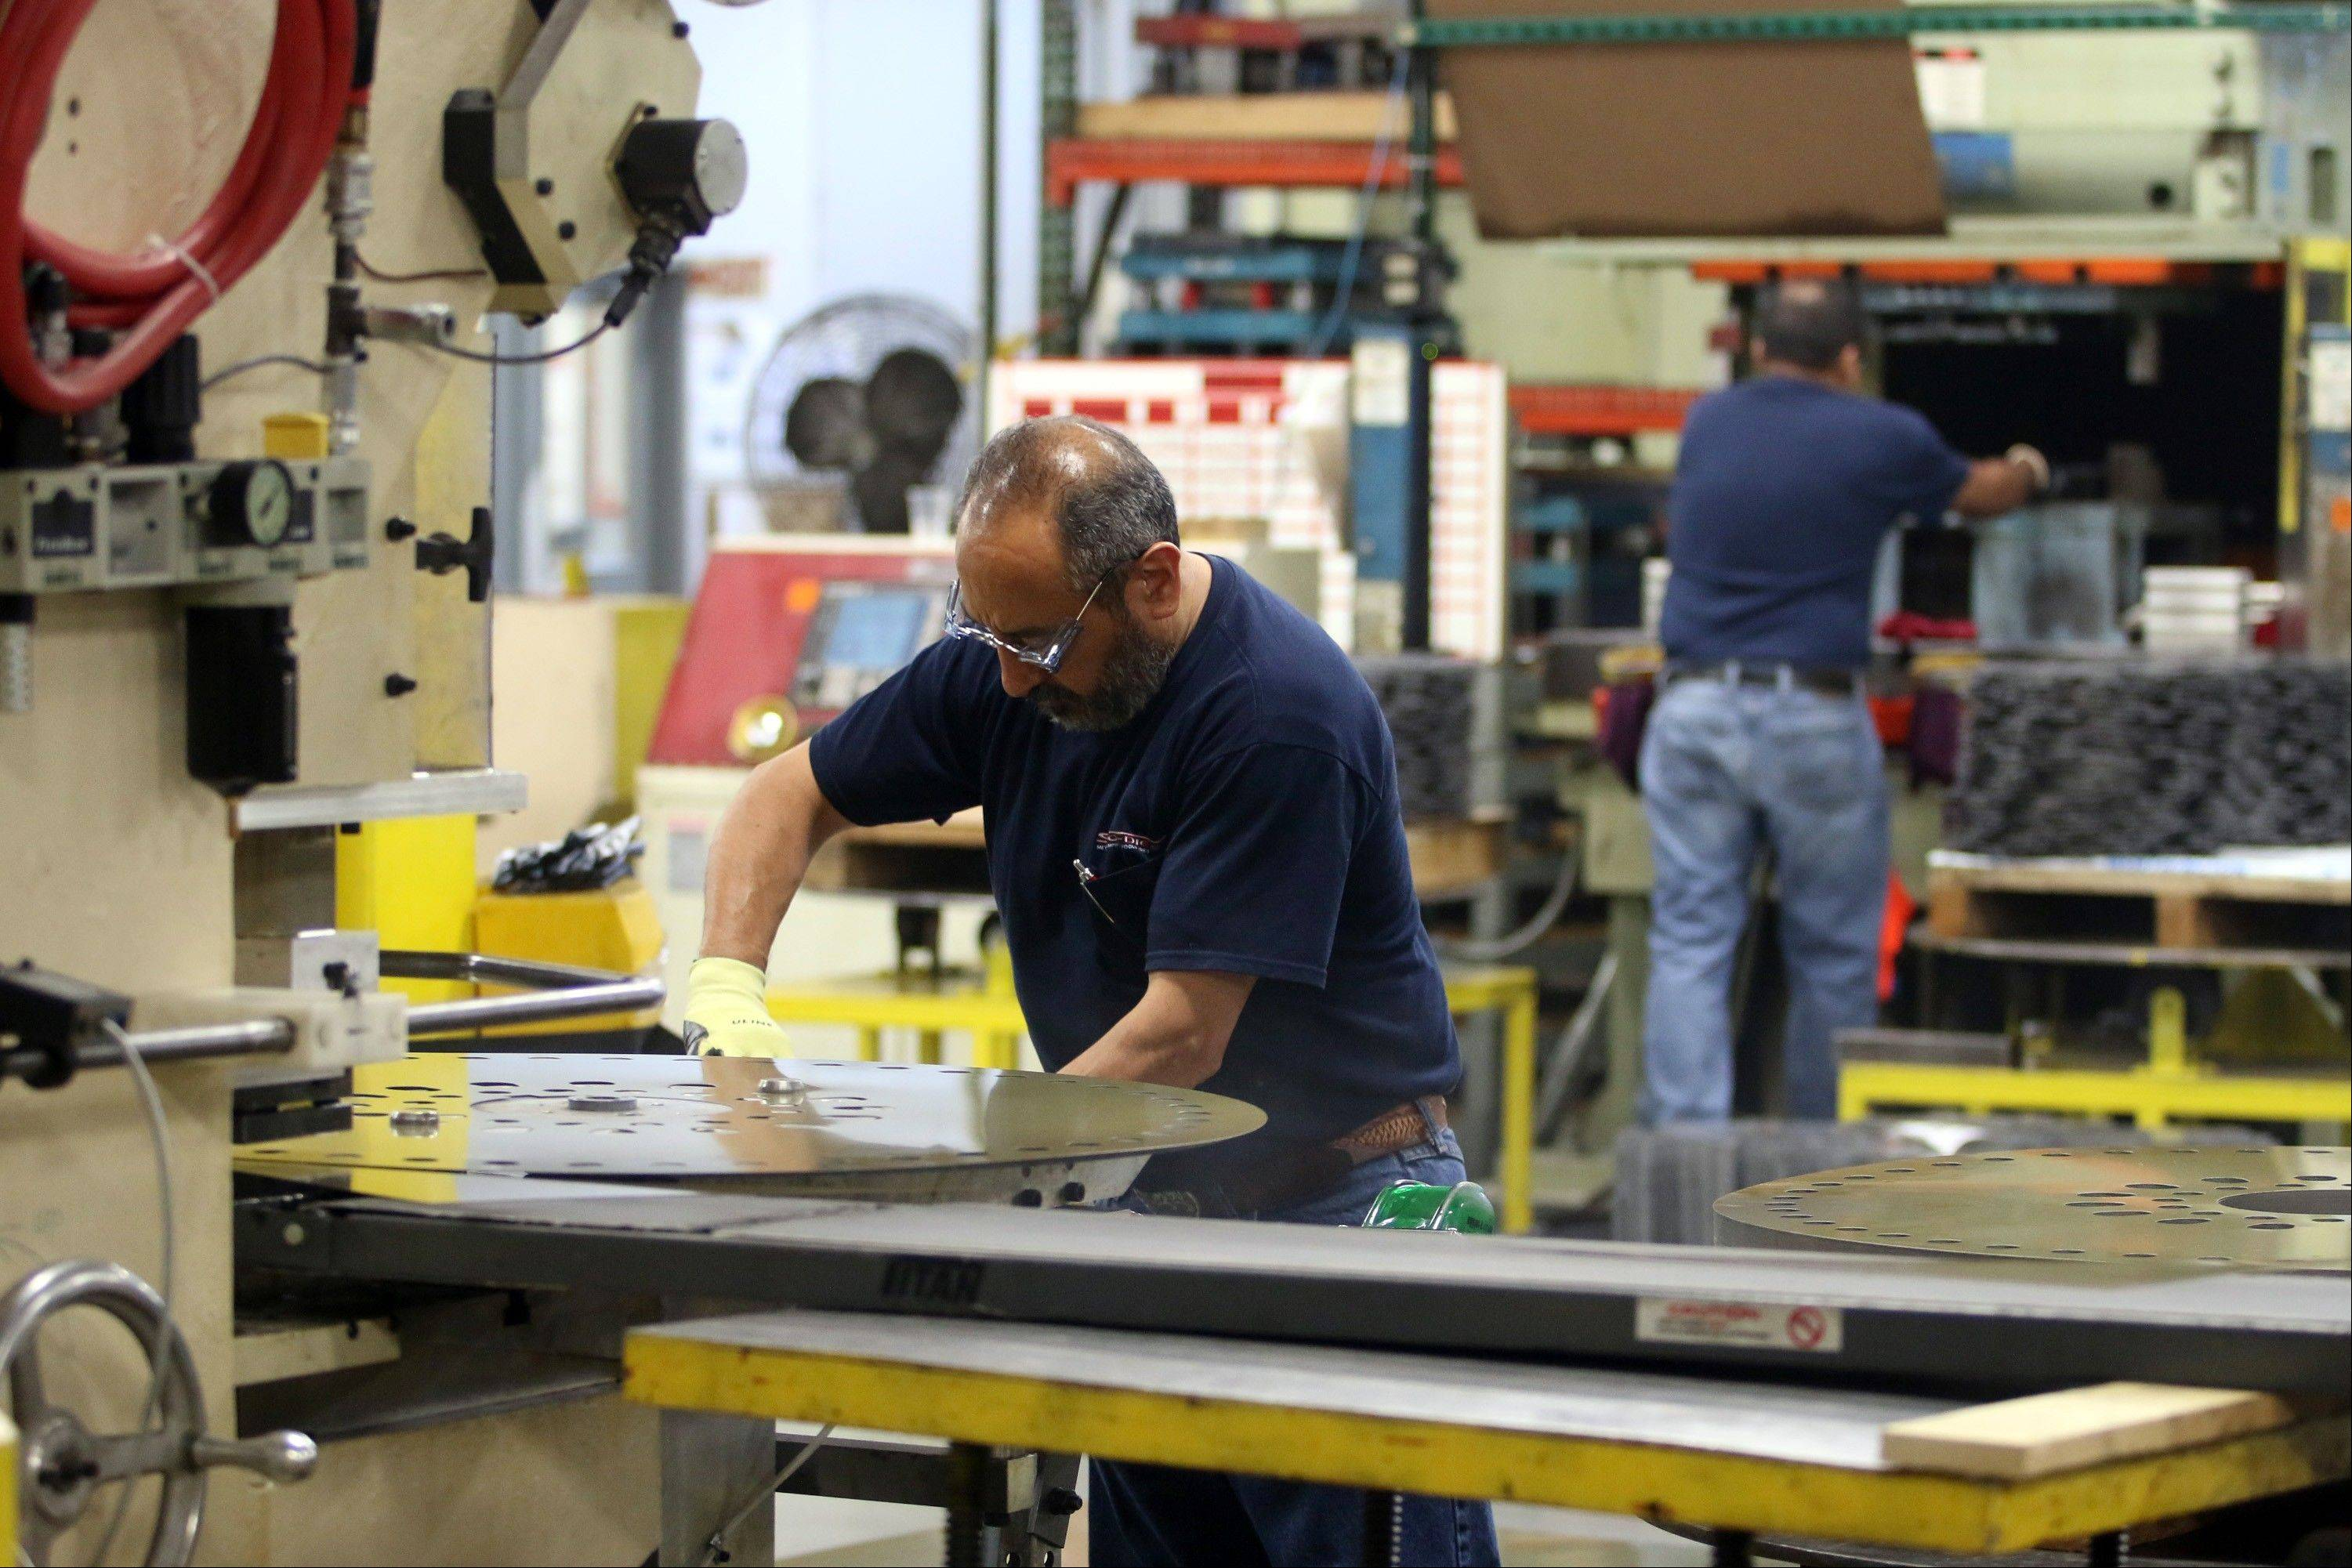 Punch press operators work at the Sko-Die Inc. custom metal manufacturing facility in Morton Grove. U.S. factory activity expanded last month at the fastest pace in 2 ½ years, an encouraging sign that manufacturing could lift economic growth and hiring in the coming months.